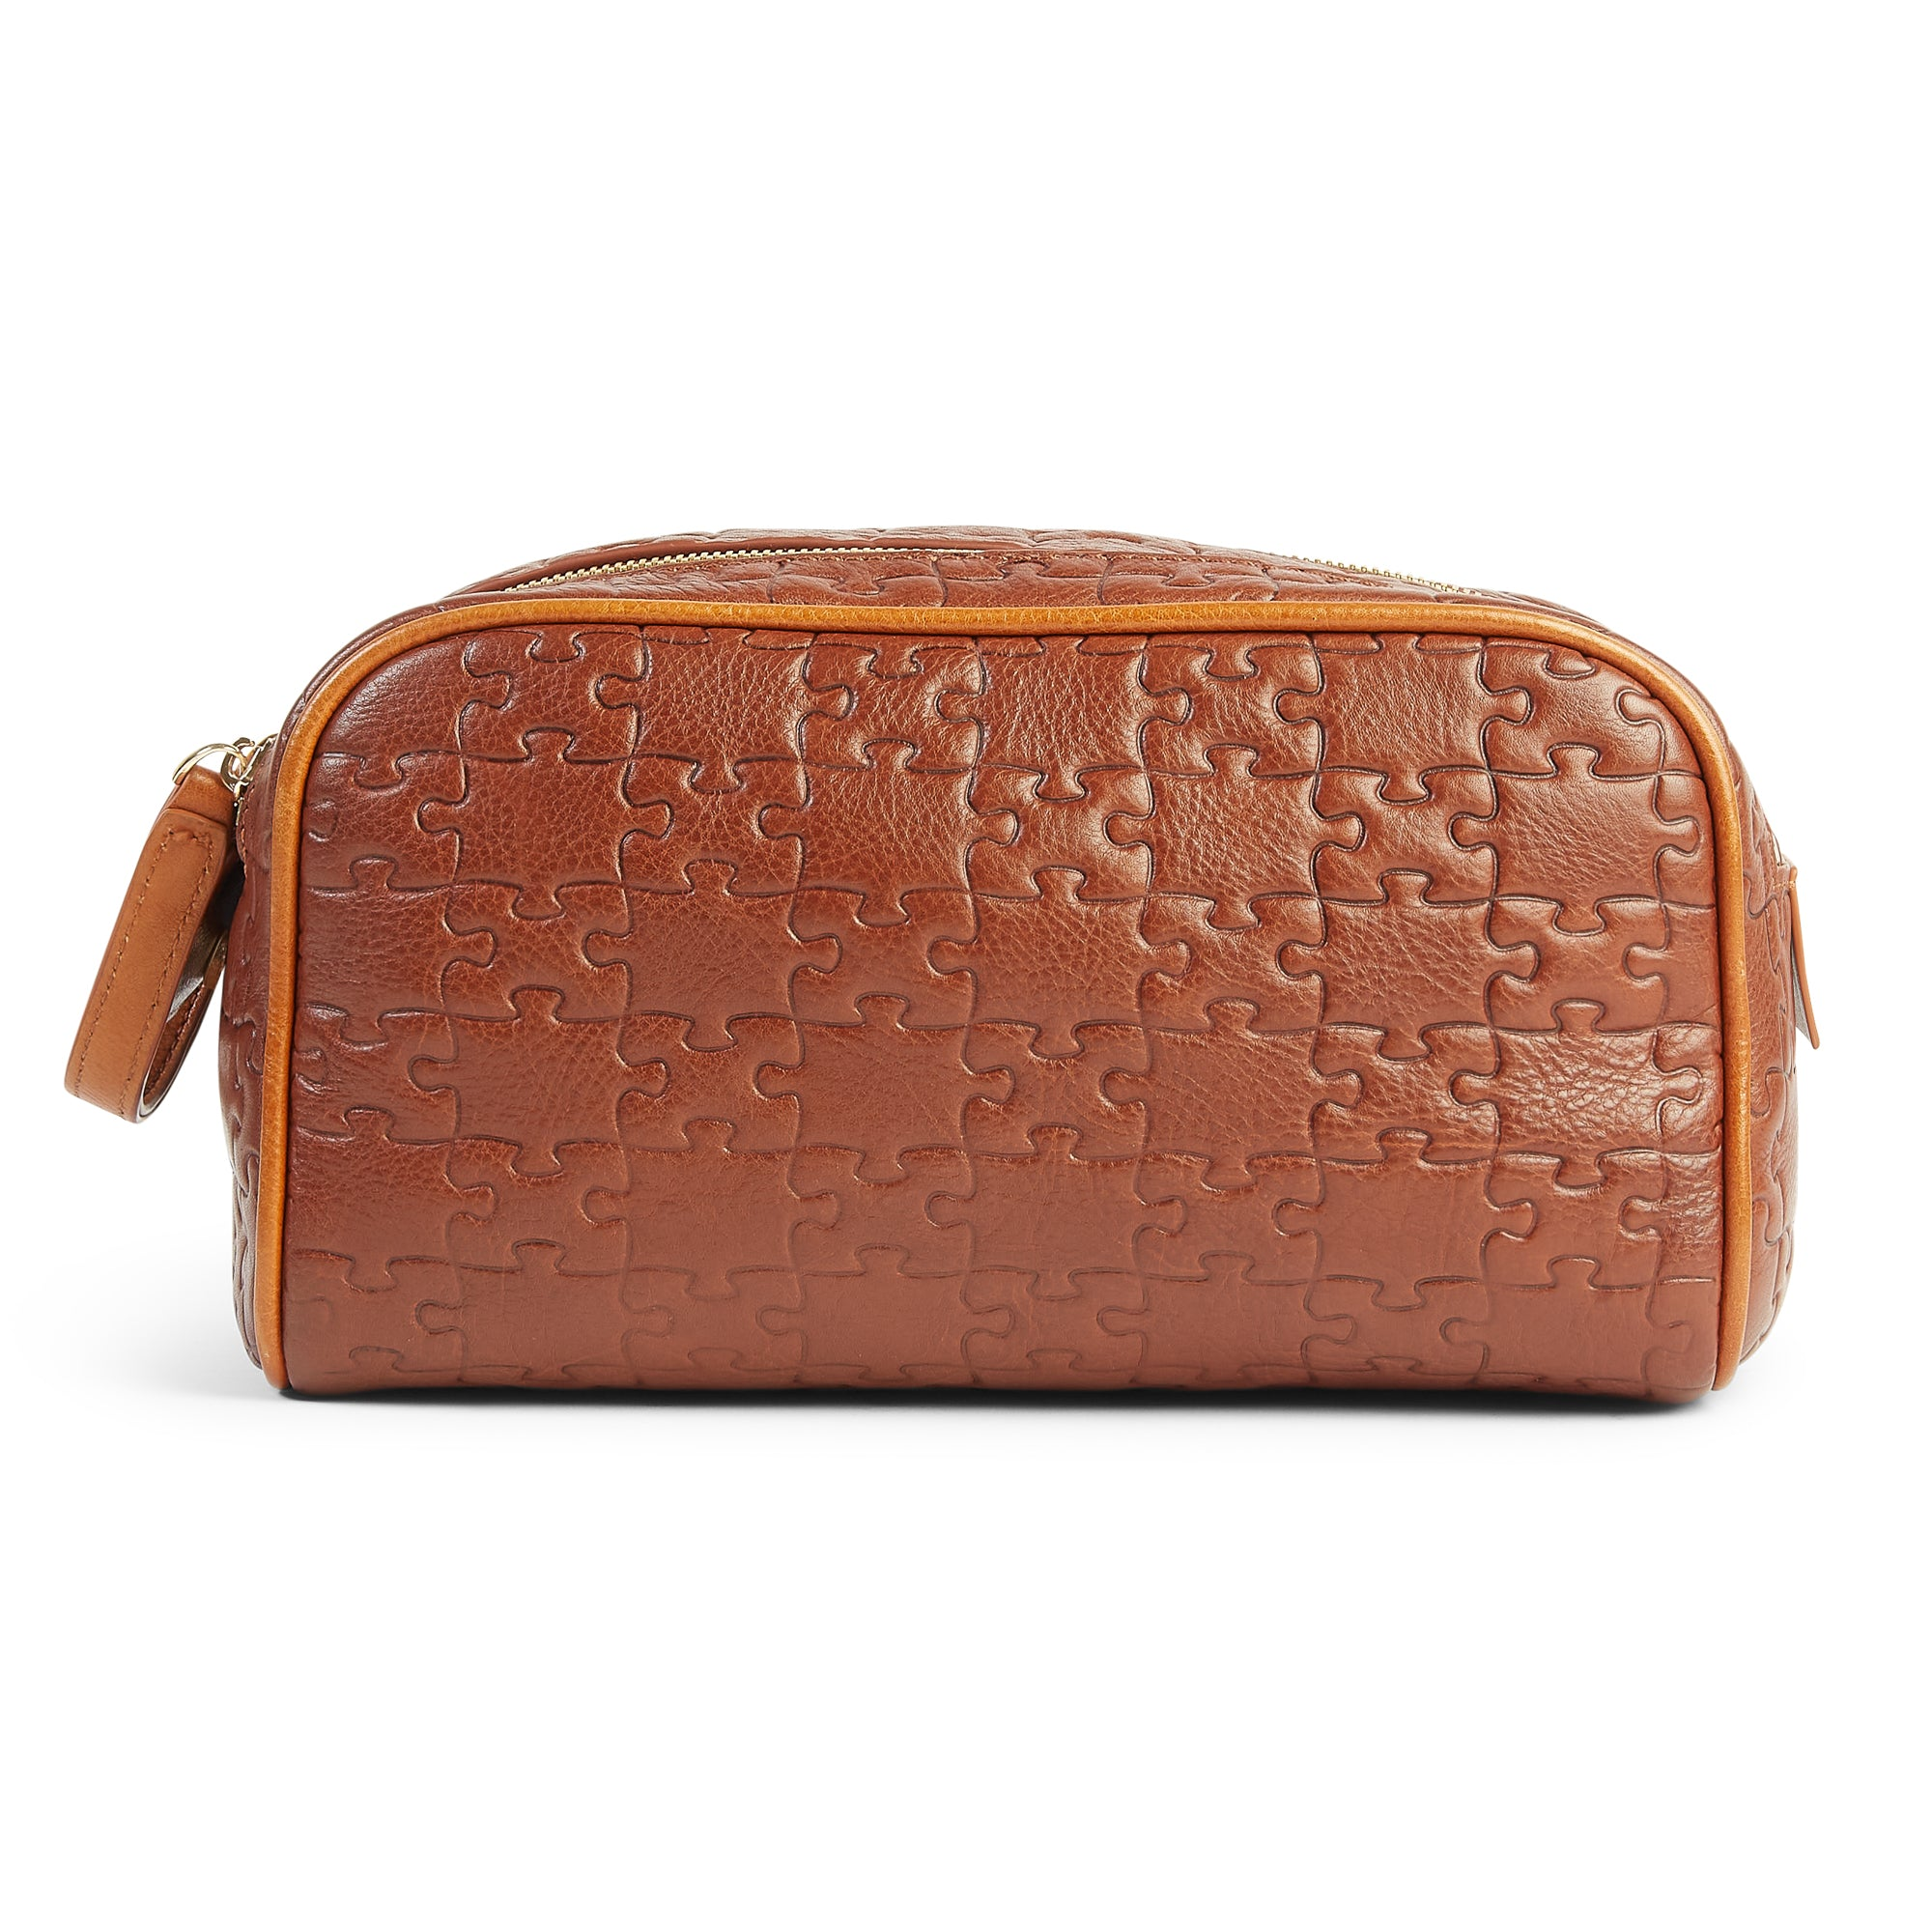 NKARI ( TWIN ZIPS) OPOOLA WASH BAG